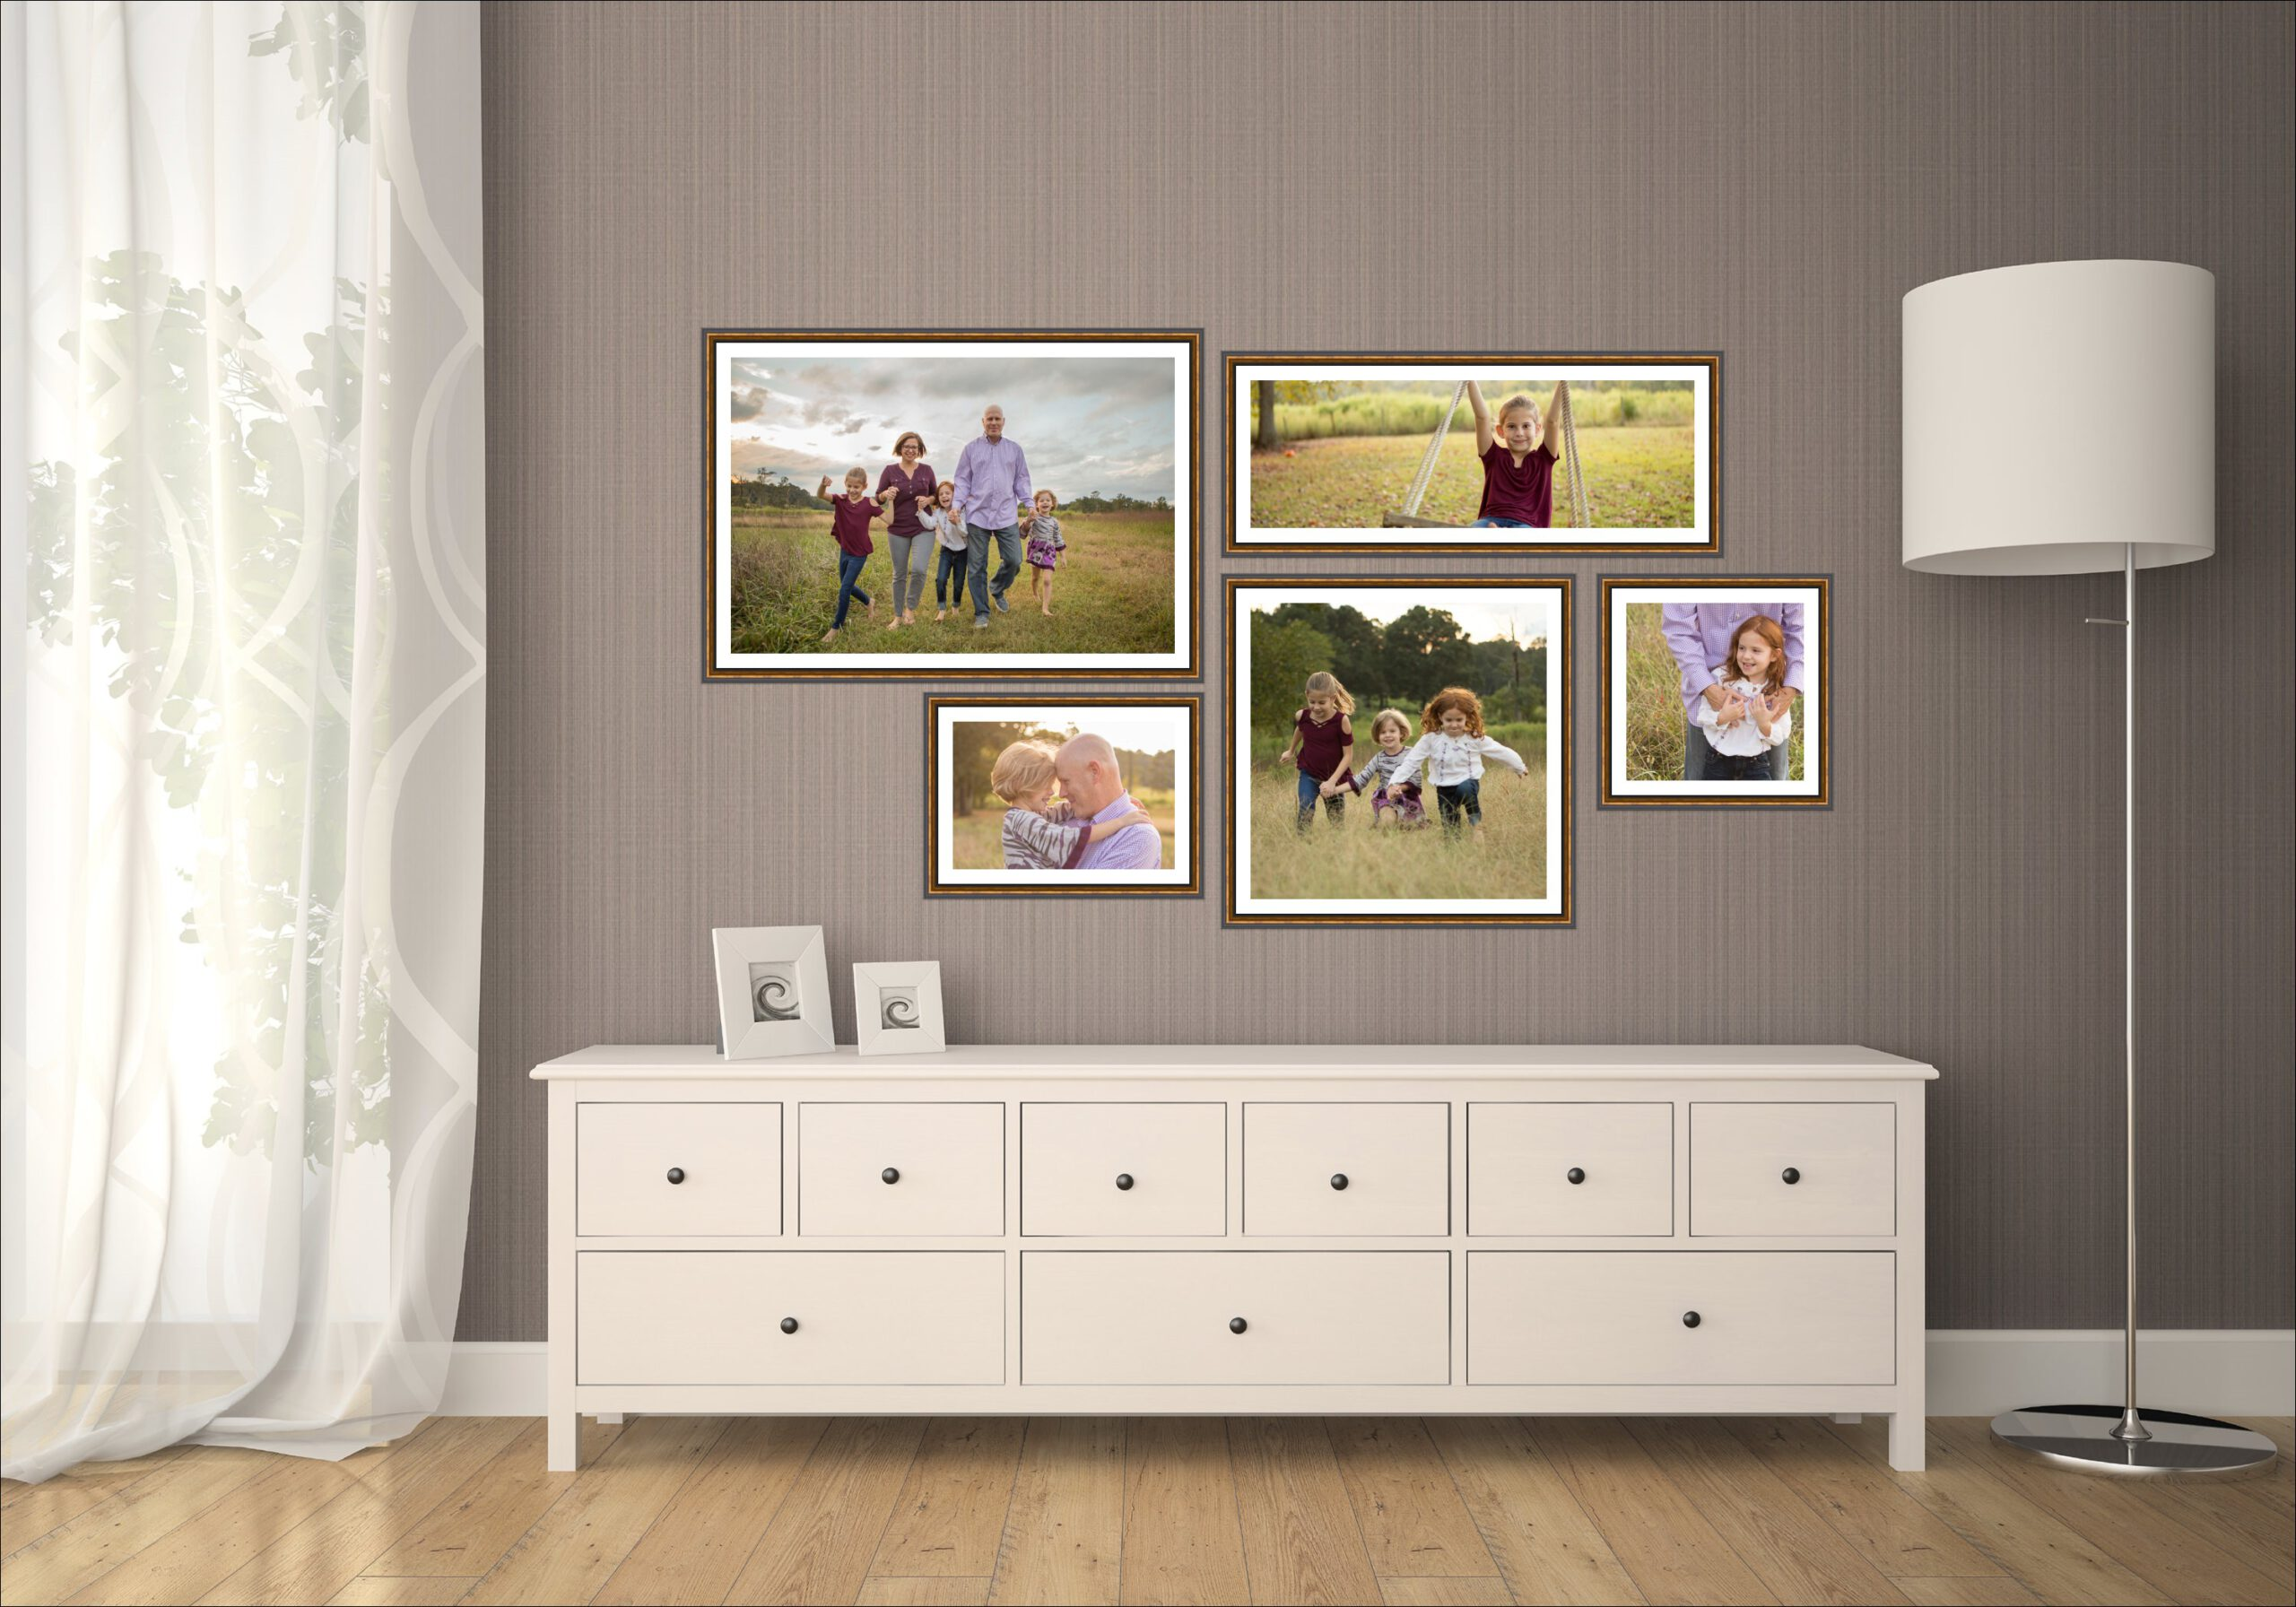 4 Easy Steps to Decorate With Photographs 4